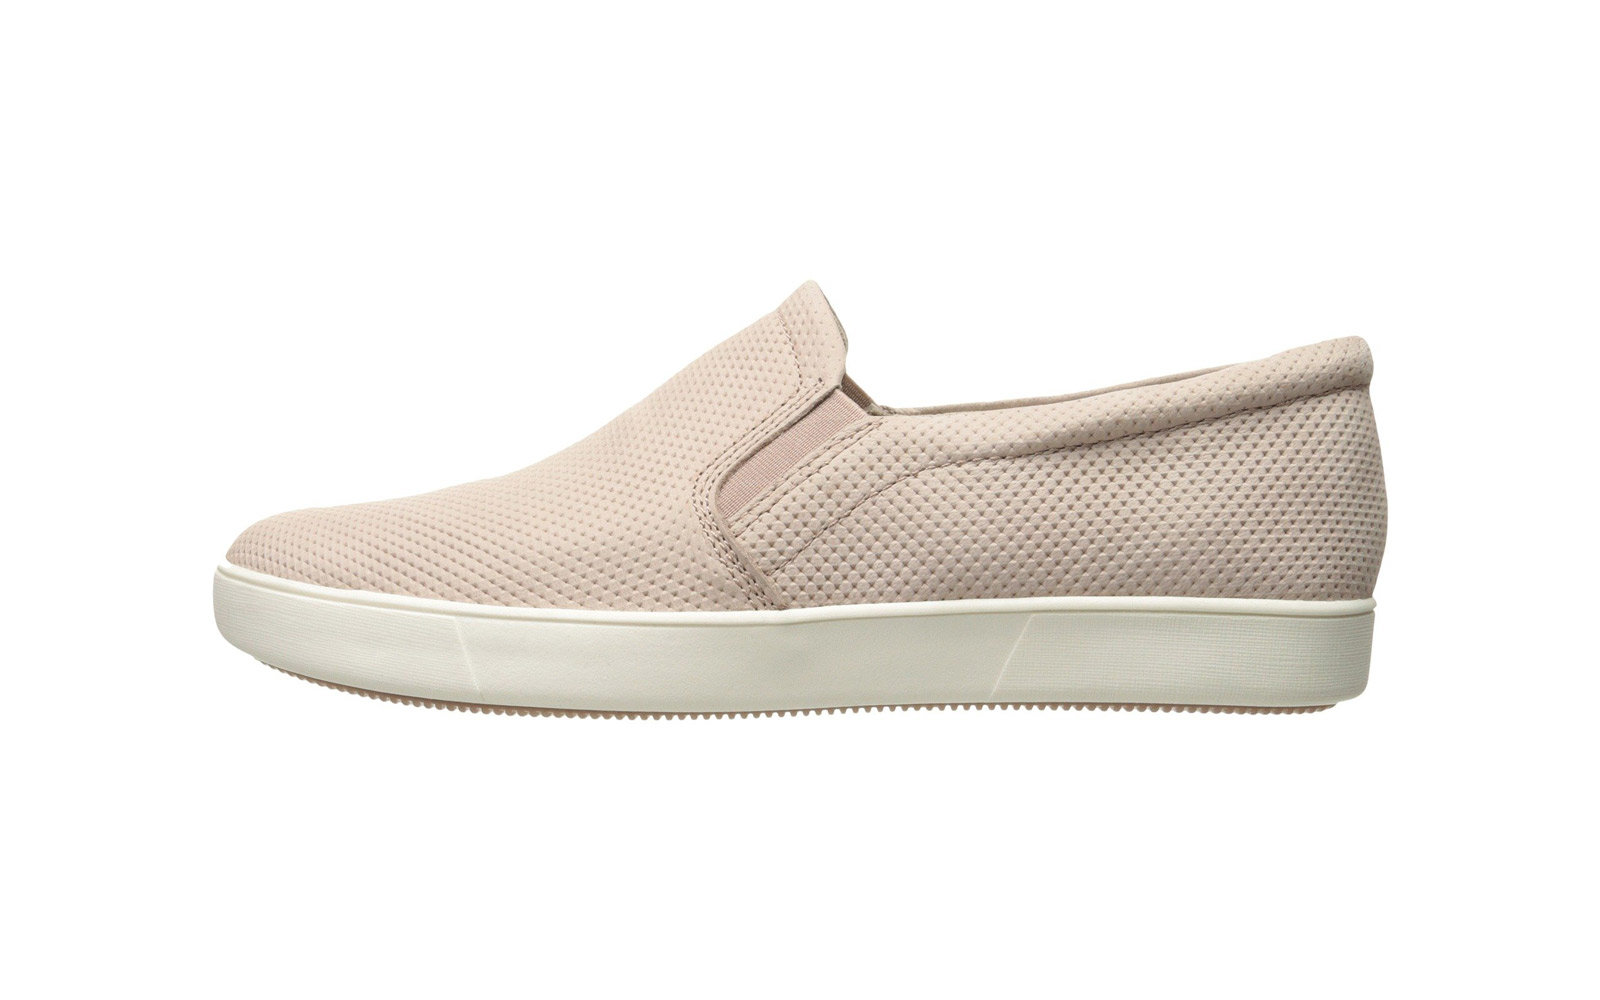 naturalizer arch support shoes for women